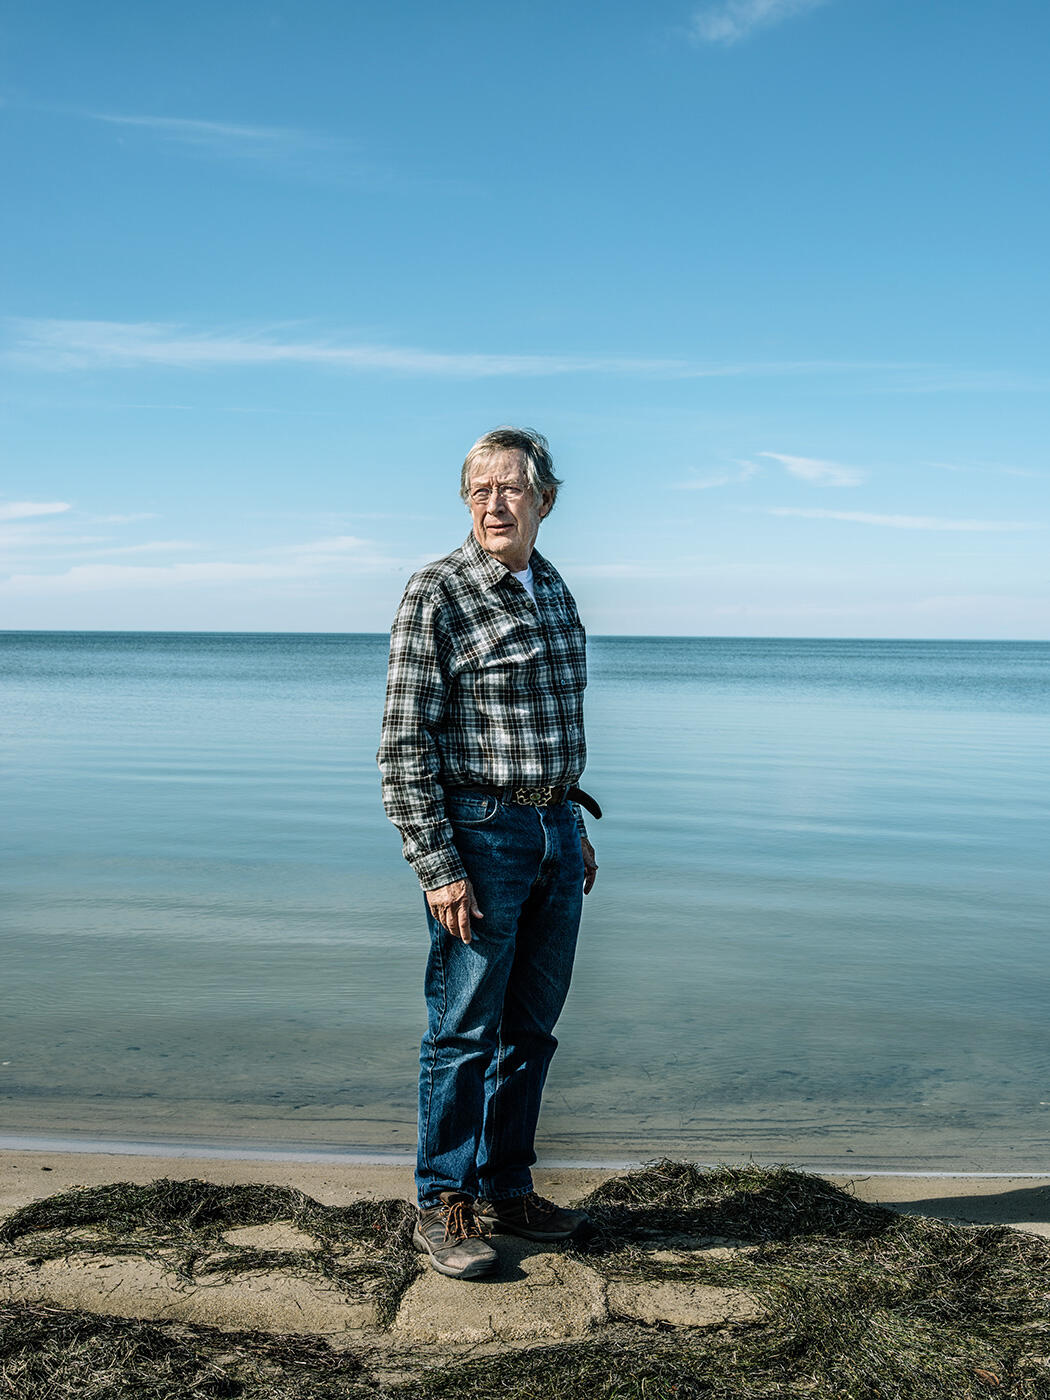 Dr. Stanley Riggs of Eastern Carolina University, has been studying the Outer Banks of North Carolina for many years, often battling locals and government officials on how to protect the islands from further damage. Greg Kahn